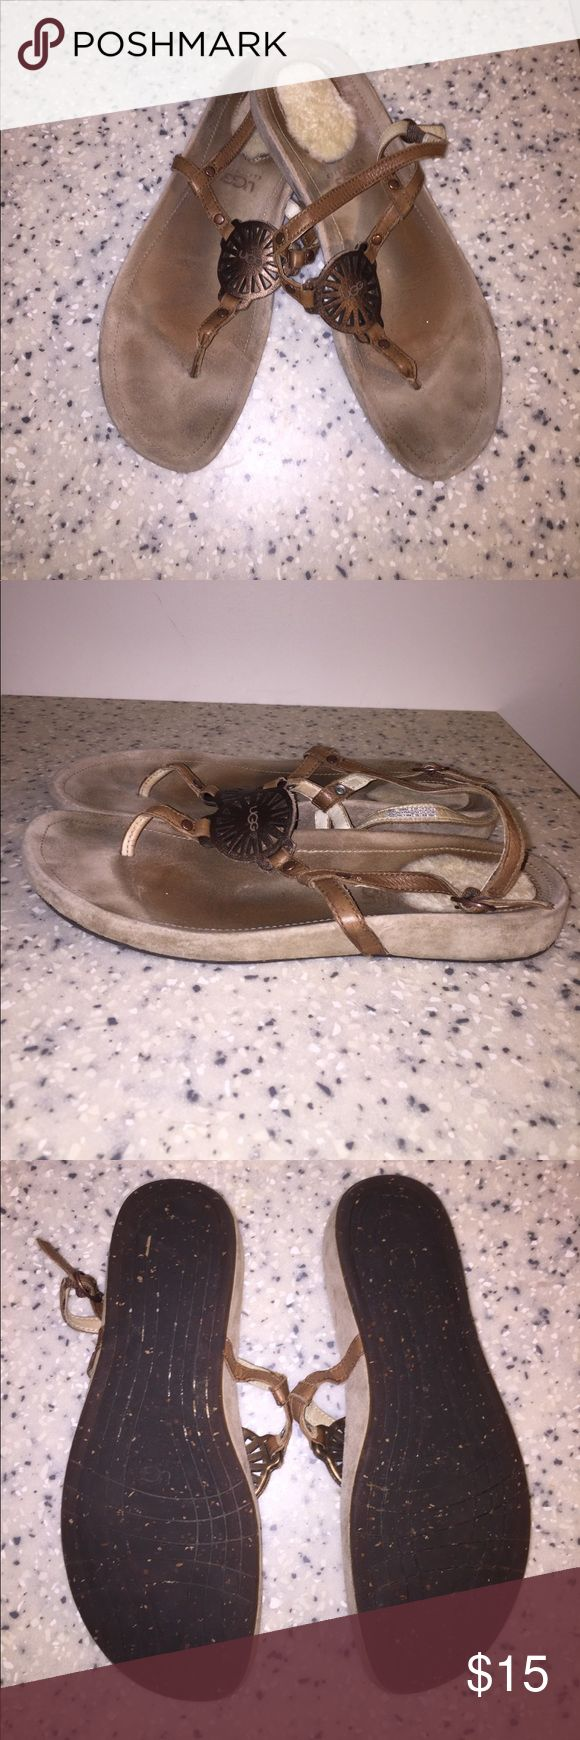 Ugg slingback sandals in bronze Beautiful slingback sandal flats from Uggs! Very comfy. Fur heel detail. Some wear. Minimal sole damage. Still a lot of life left in these shoes! Only worn for 1 summer season 4 years ago. UGG Shoes Sandals